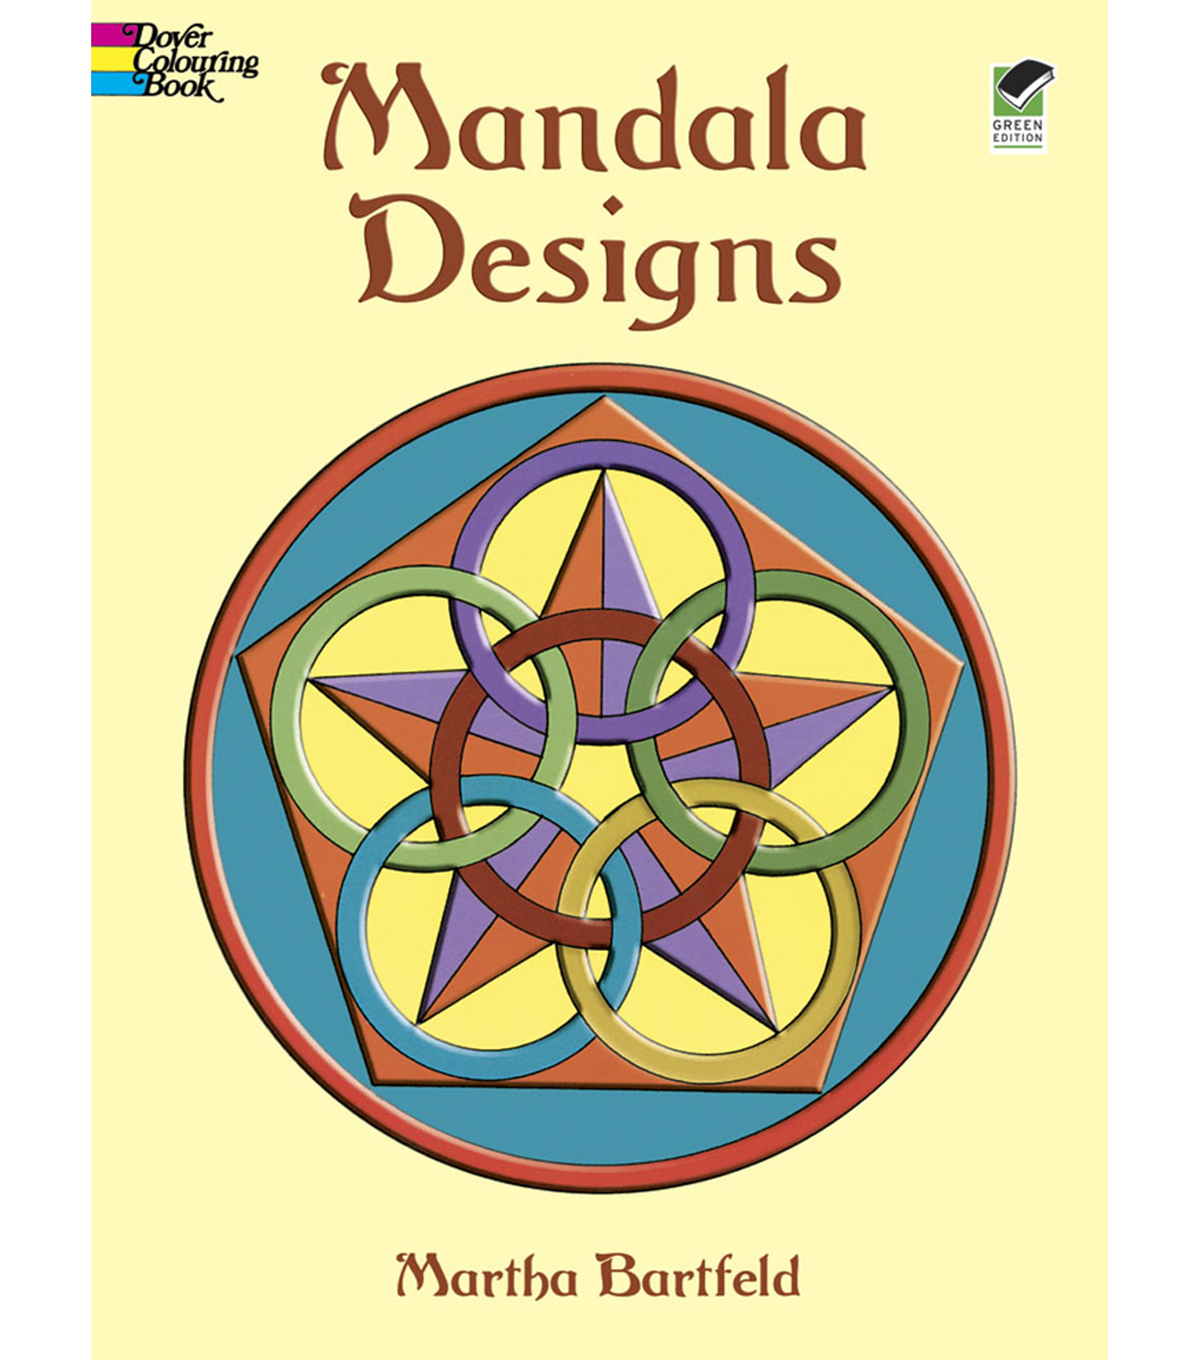 adult coloring book dover publication mandala designs - Dover Coloring Books